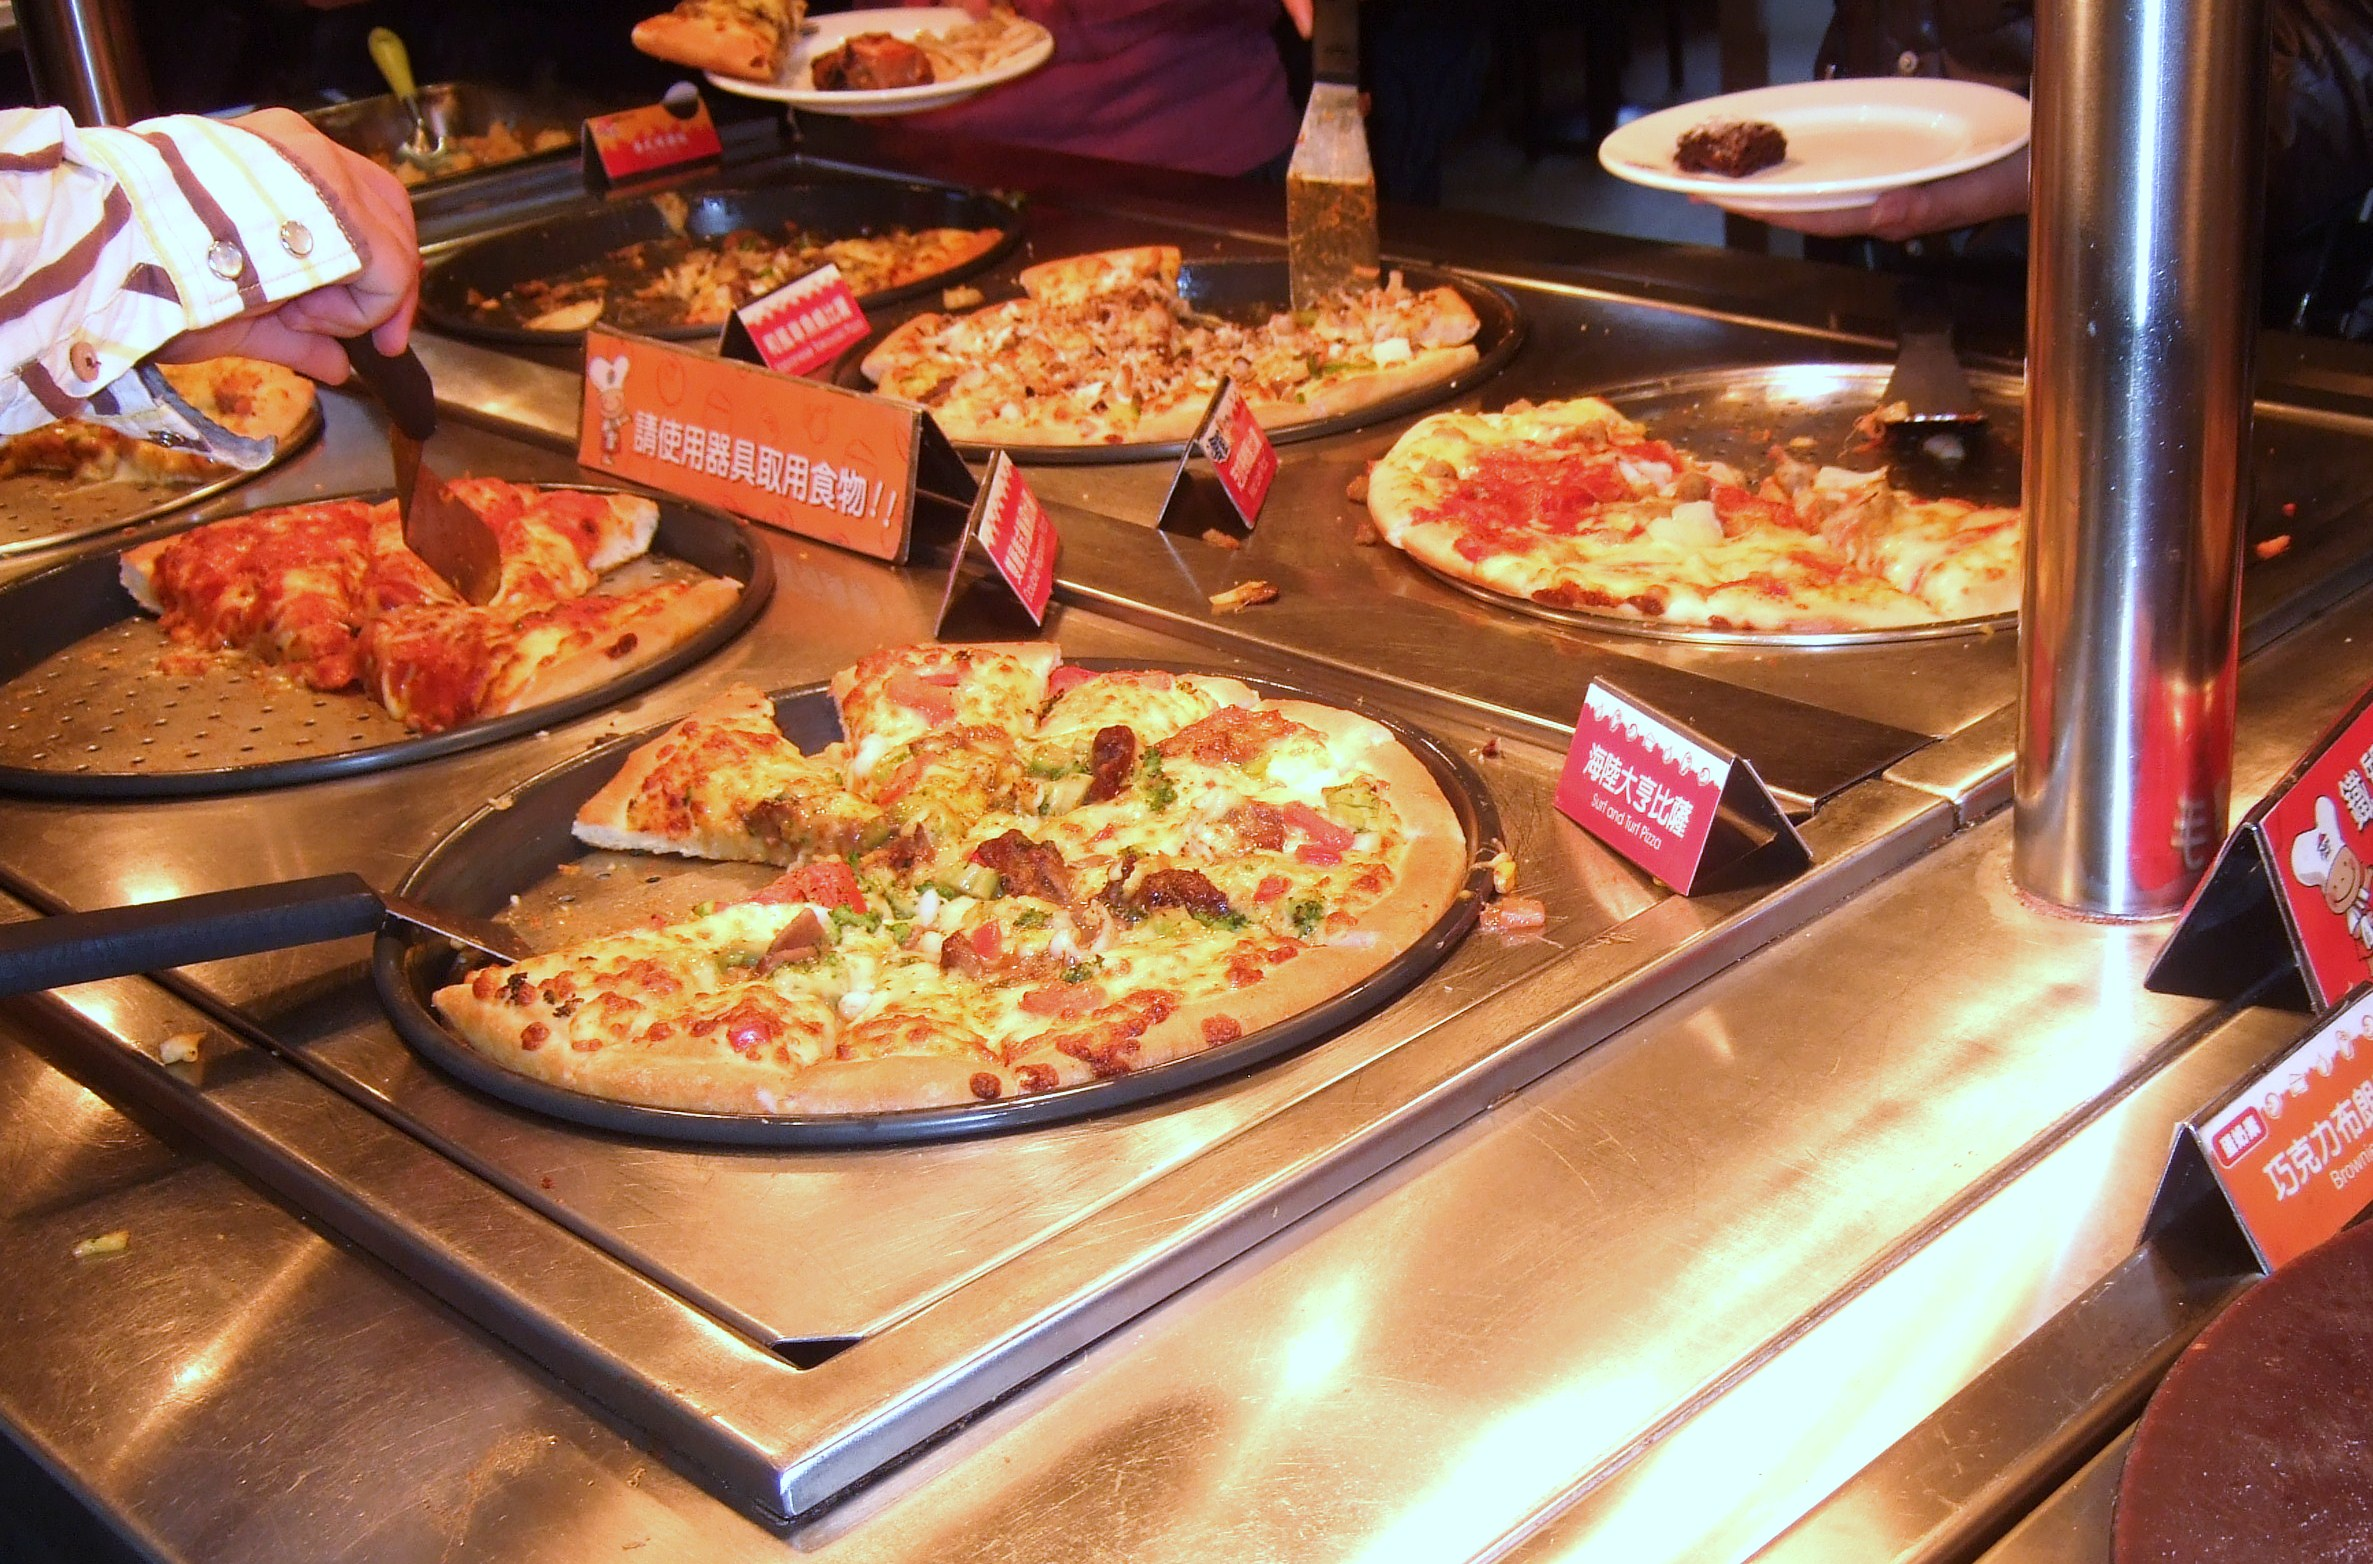 All You Can Eat Pizza Hut! | About Writing - The Personal Blog of Pace J Miller